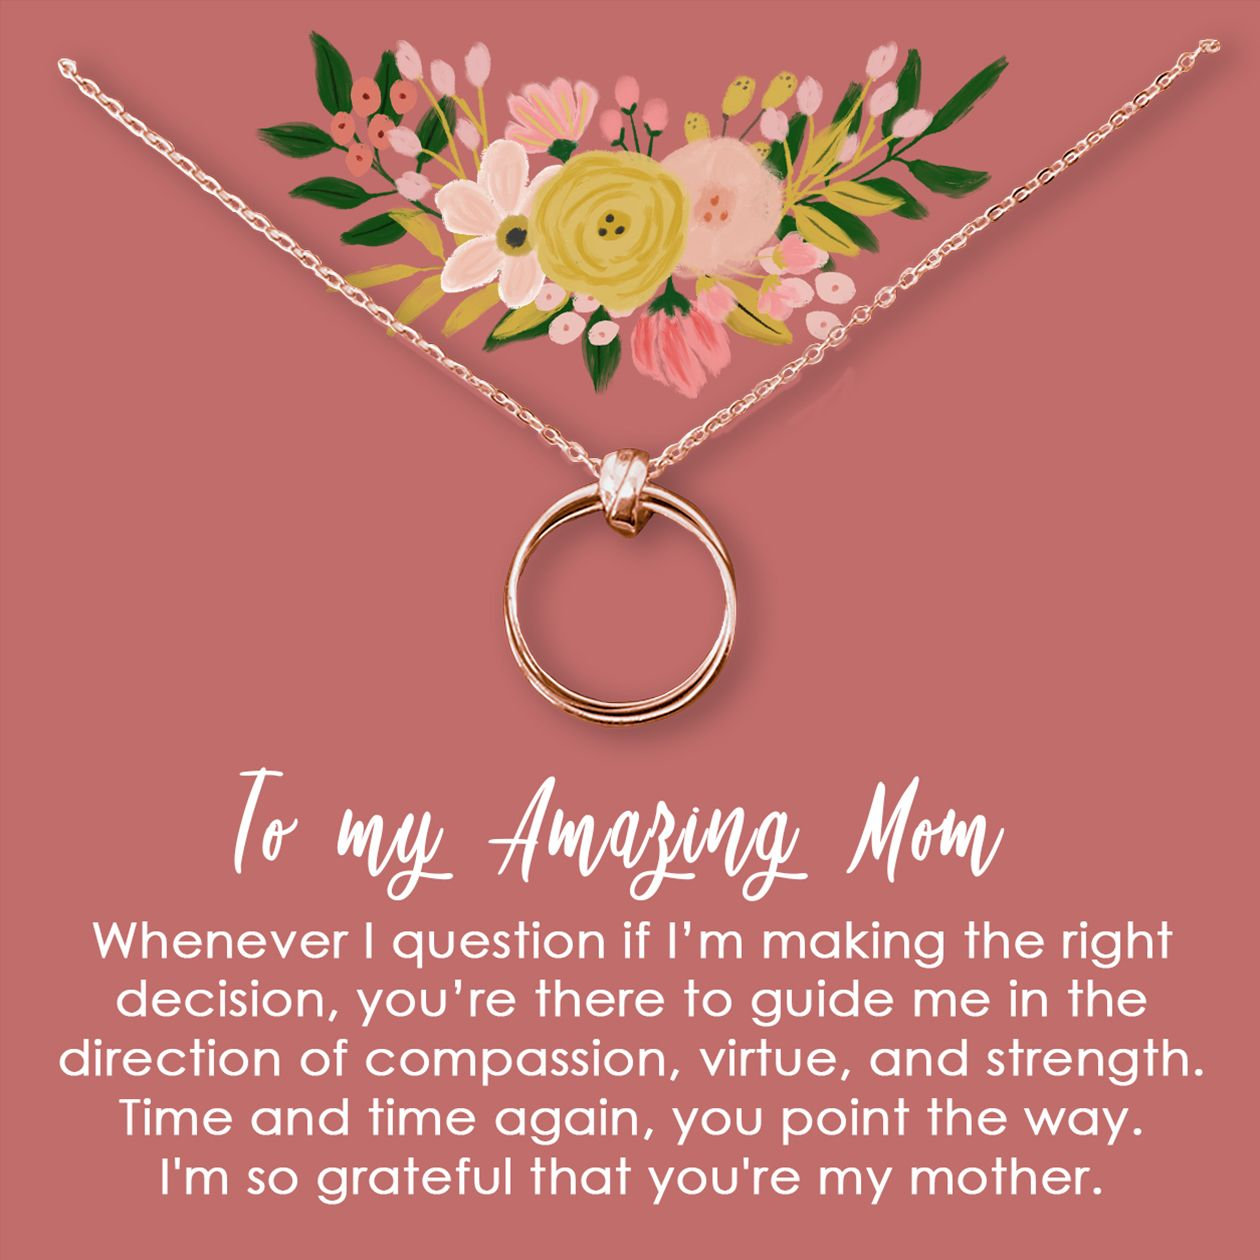 Mother's Day Necklace Happy birthday mom from daughter